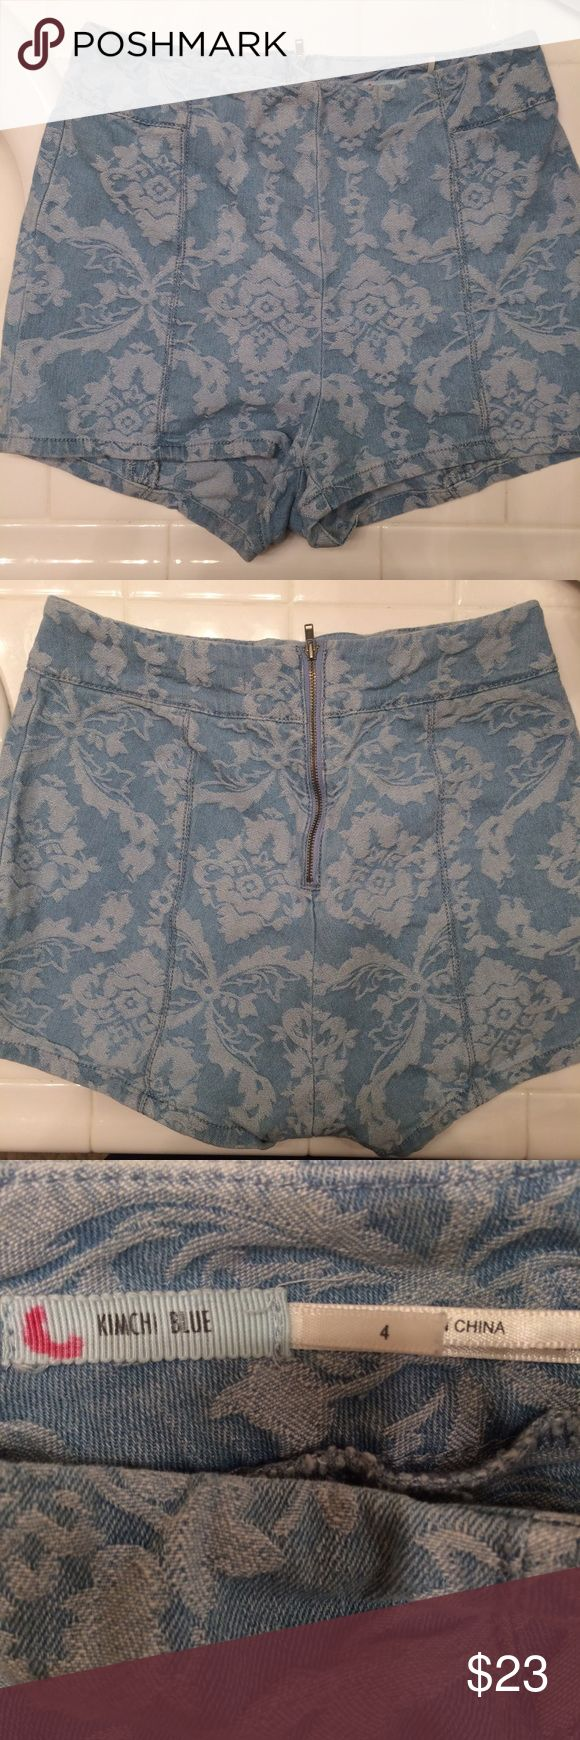 """Light blue paisley print high waisted shorts Light blue paisley print high waisted shorts by Kimchi Blue from Urban Outfiyyets, size 4nwould best fit a size 26""""/27"""" waist, no flaws very good condition #uo #urban #outfitters #kimchi #blue #light #paisley #boho #bohemian #print #high #waisted #highwaisted #rise #highrise #pinup #shorts #summer Urban Outfitters Shorts"""